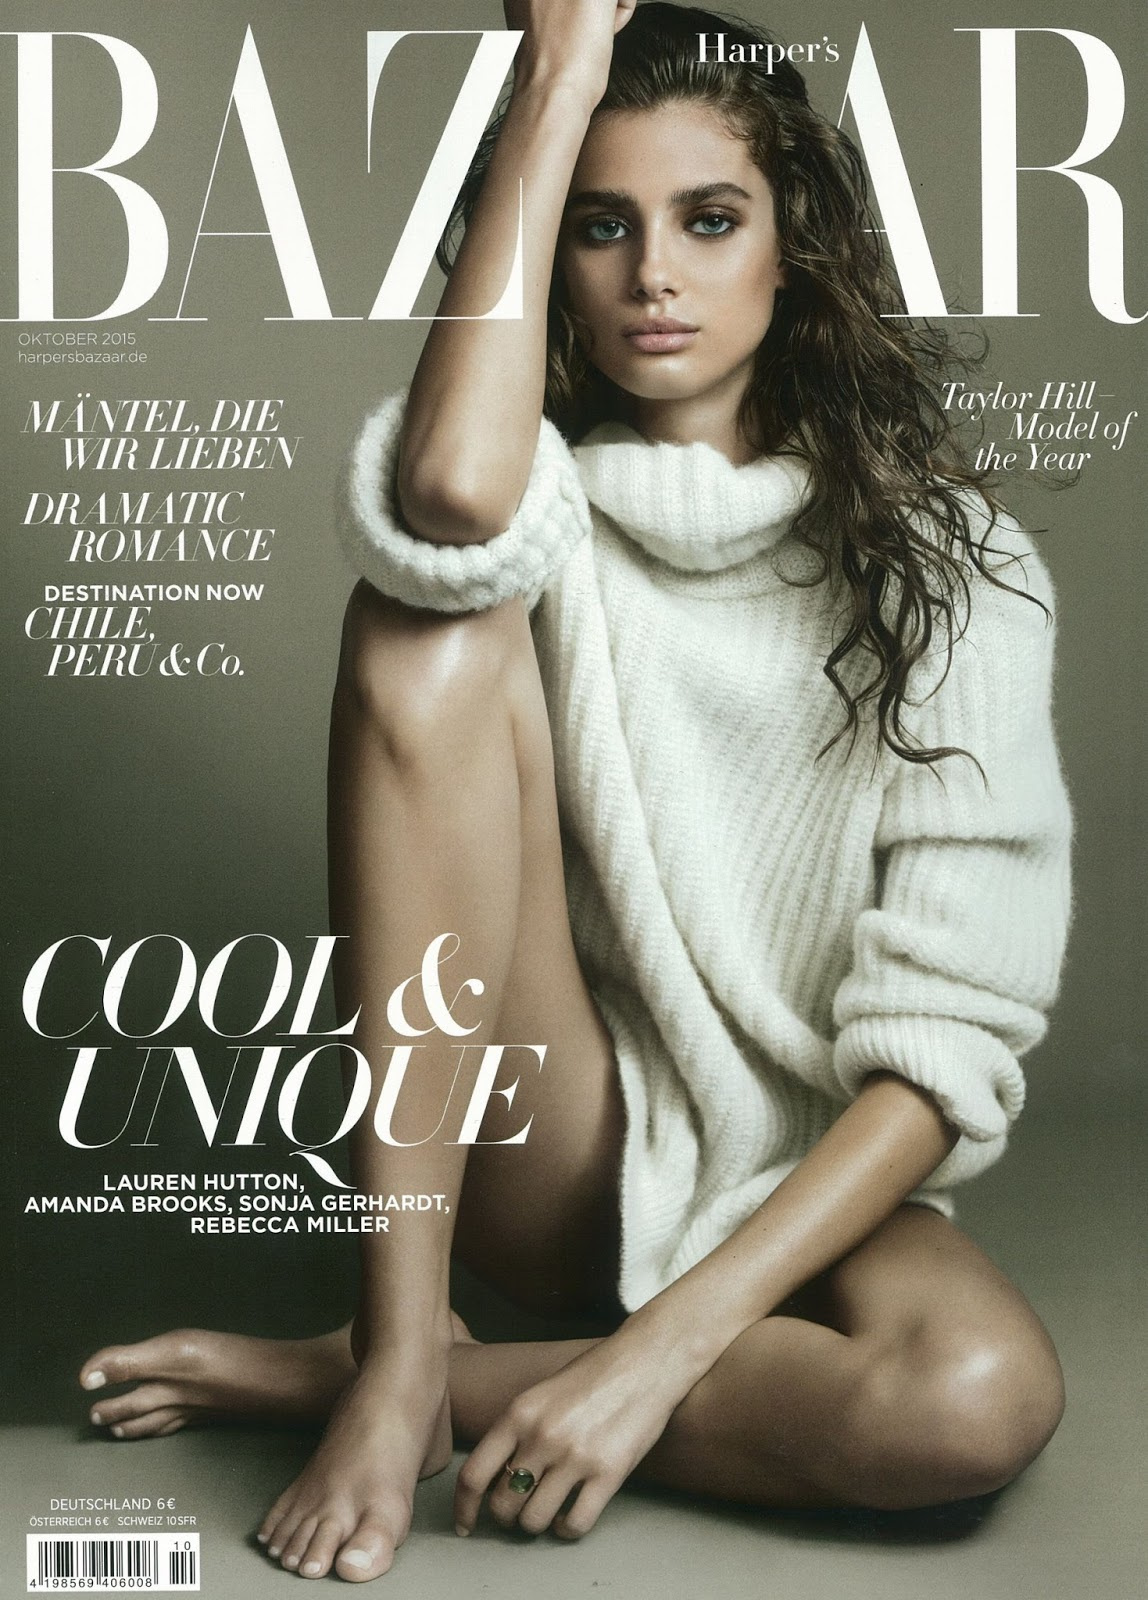 Hot and sexy American model on the cover of Bazaar magazine